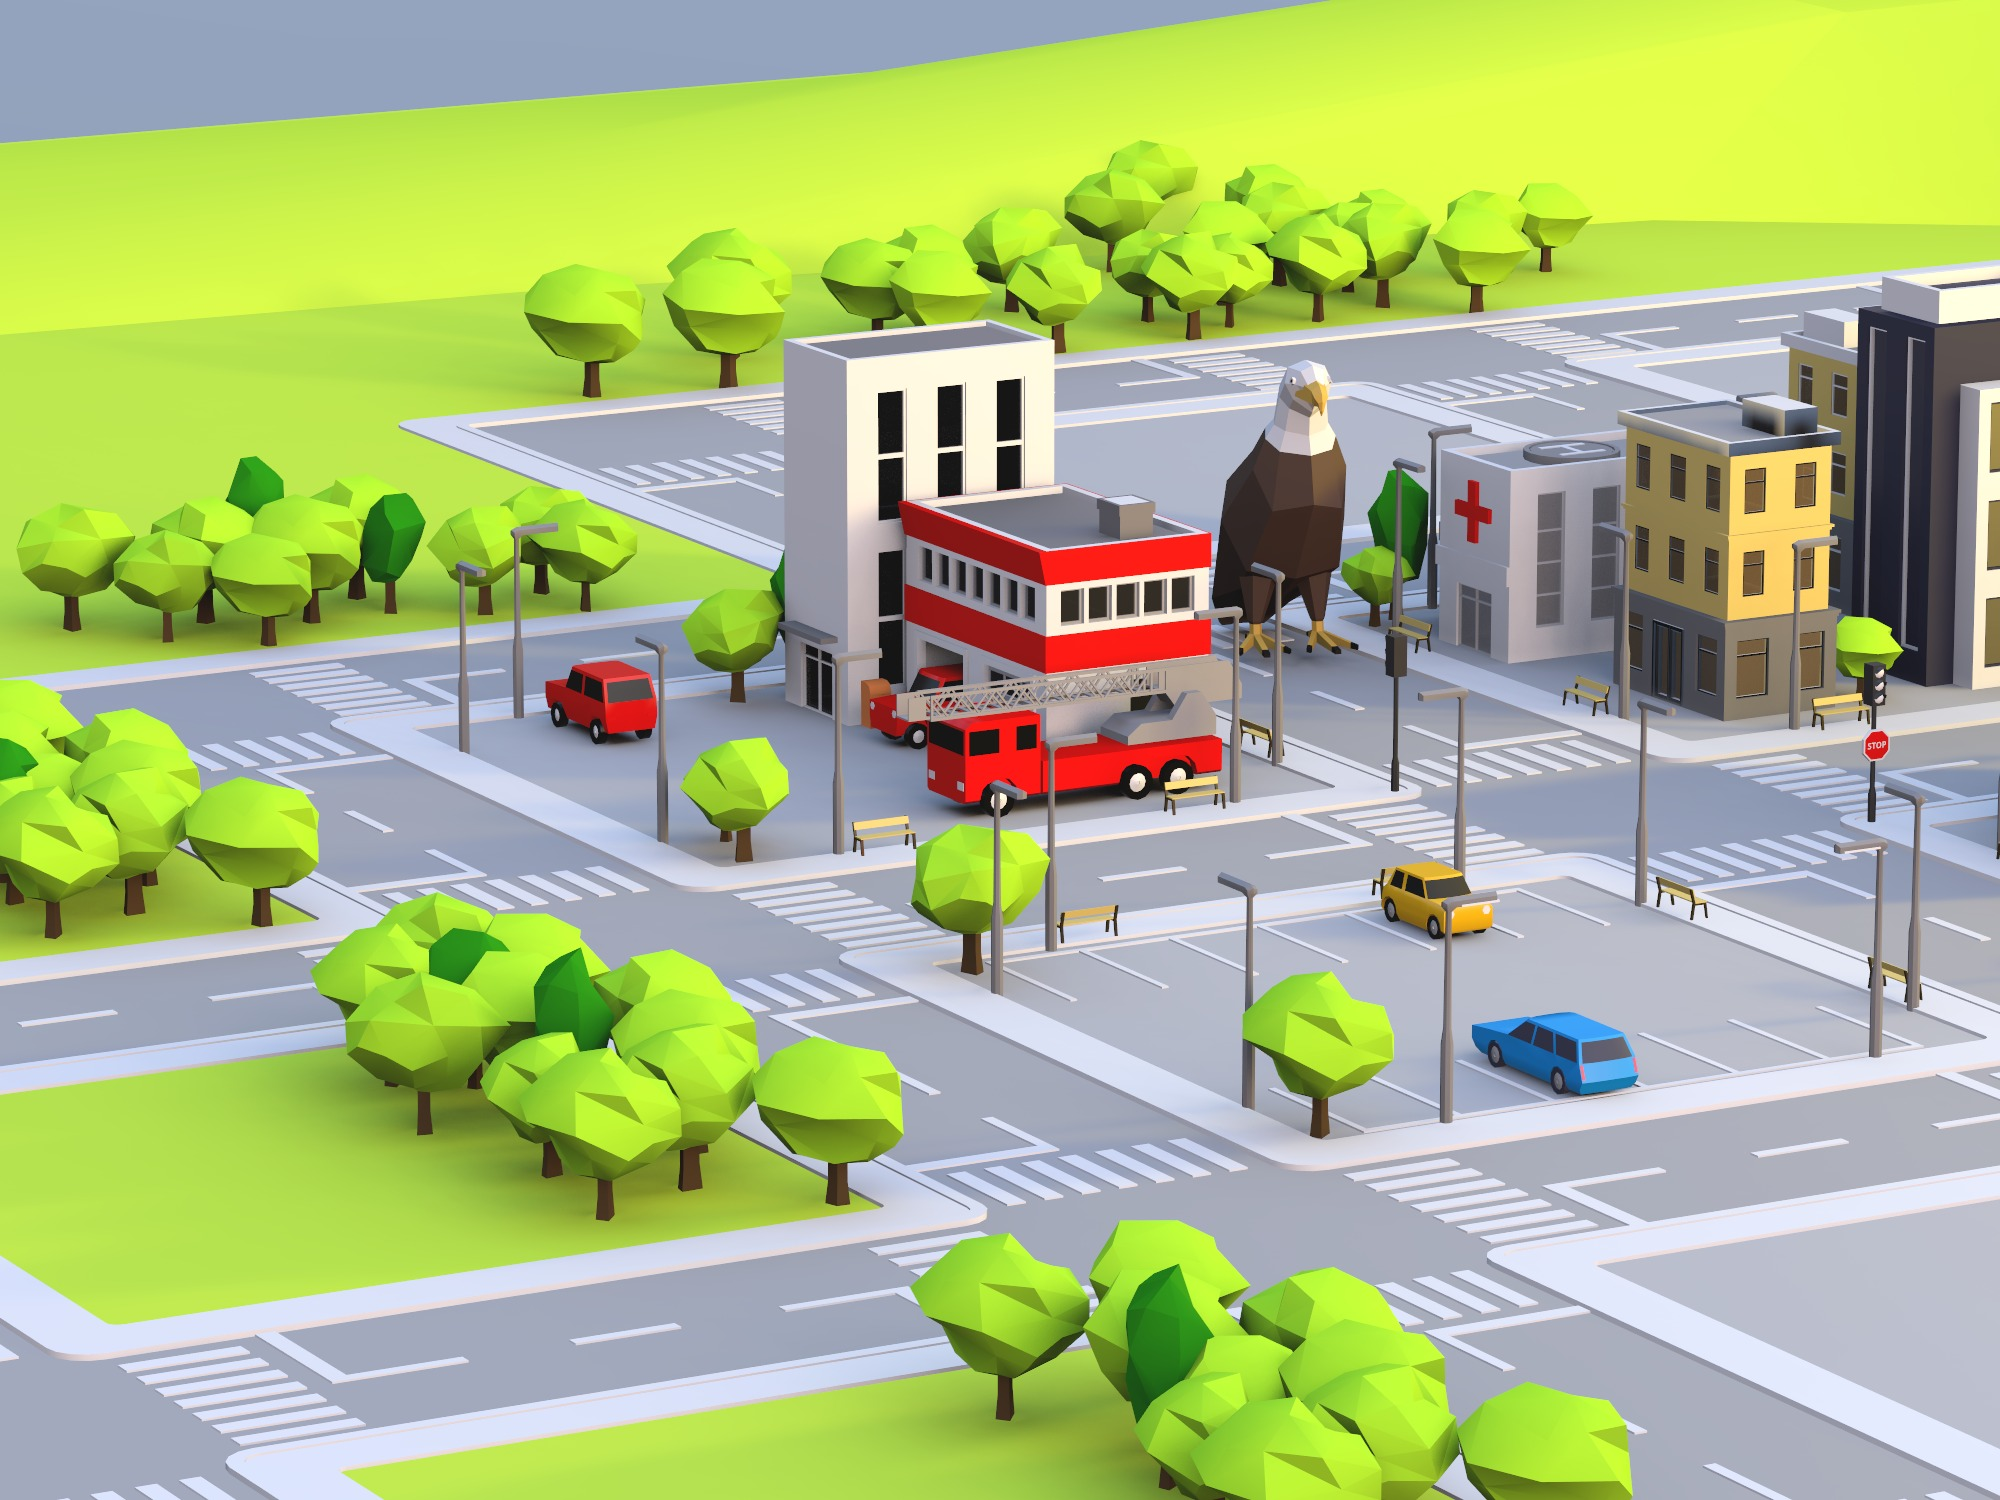 Build a city - drag and drop objects (copy) (copy) - 3D design by gajendra kumar on Dec 15, 2018